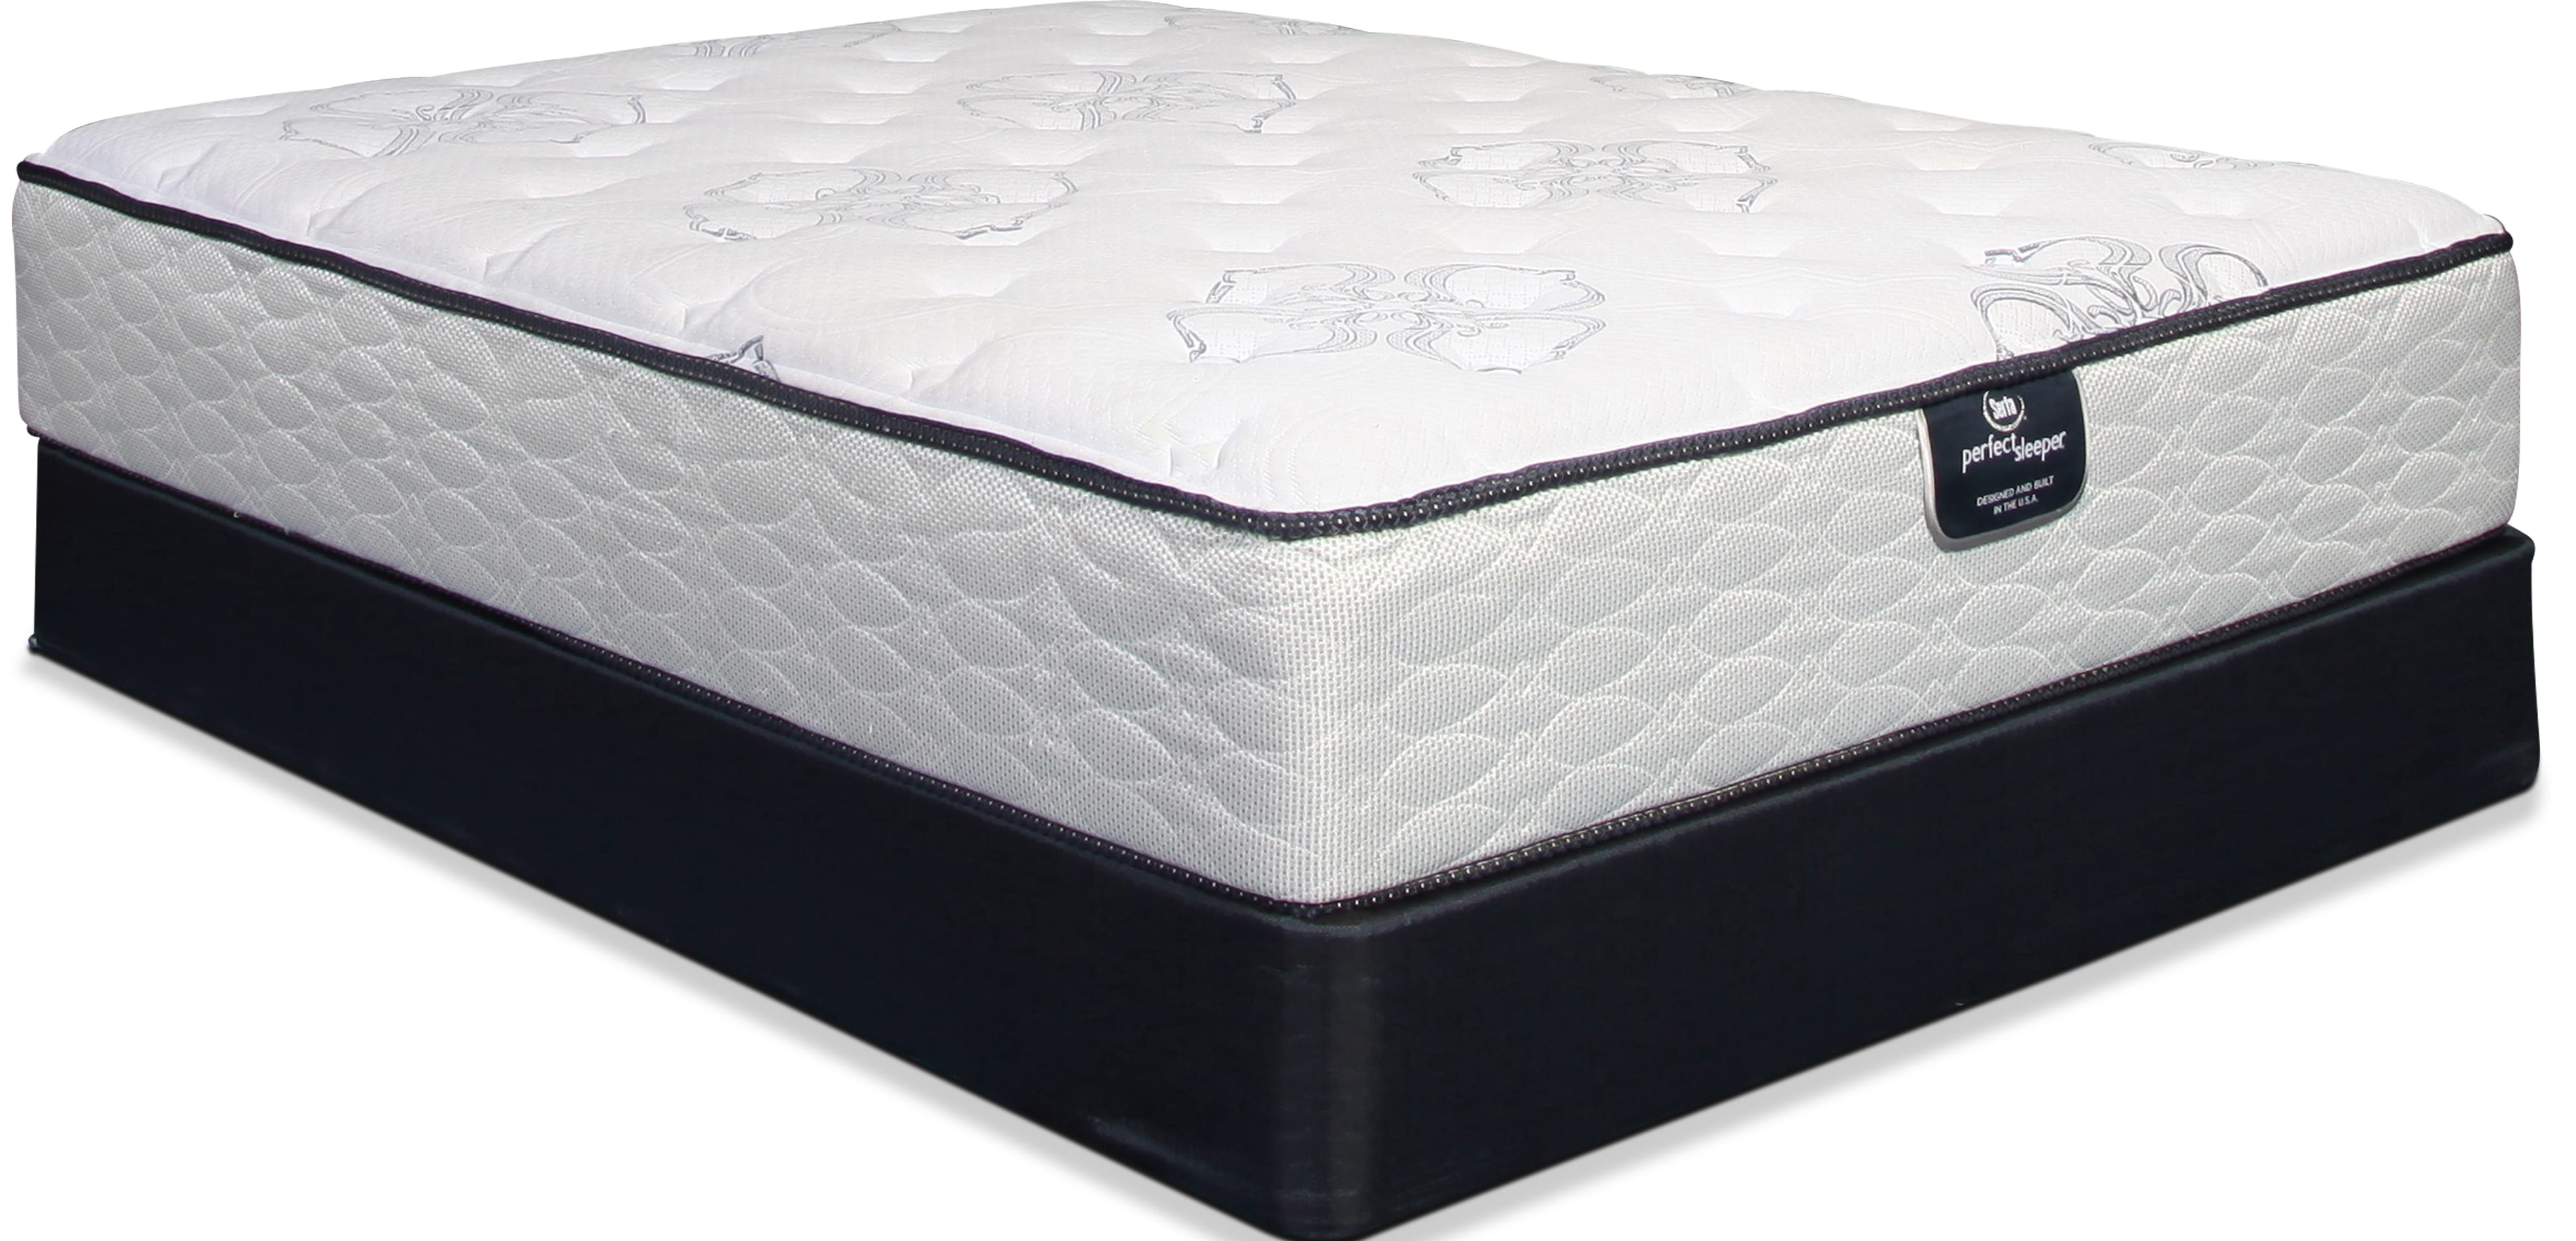 Serta Perfect Sleeper Cushion Firm California King Mattress and Split Boxsprings